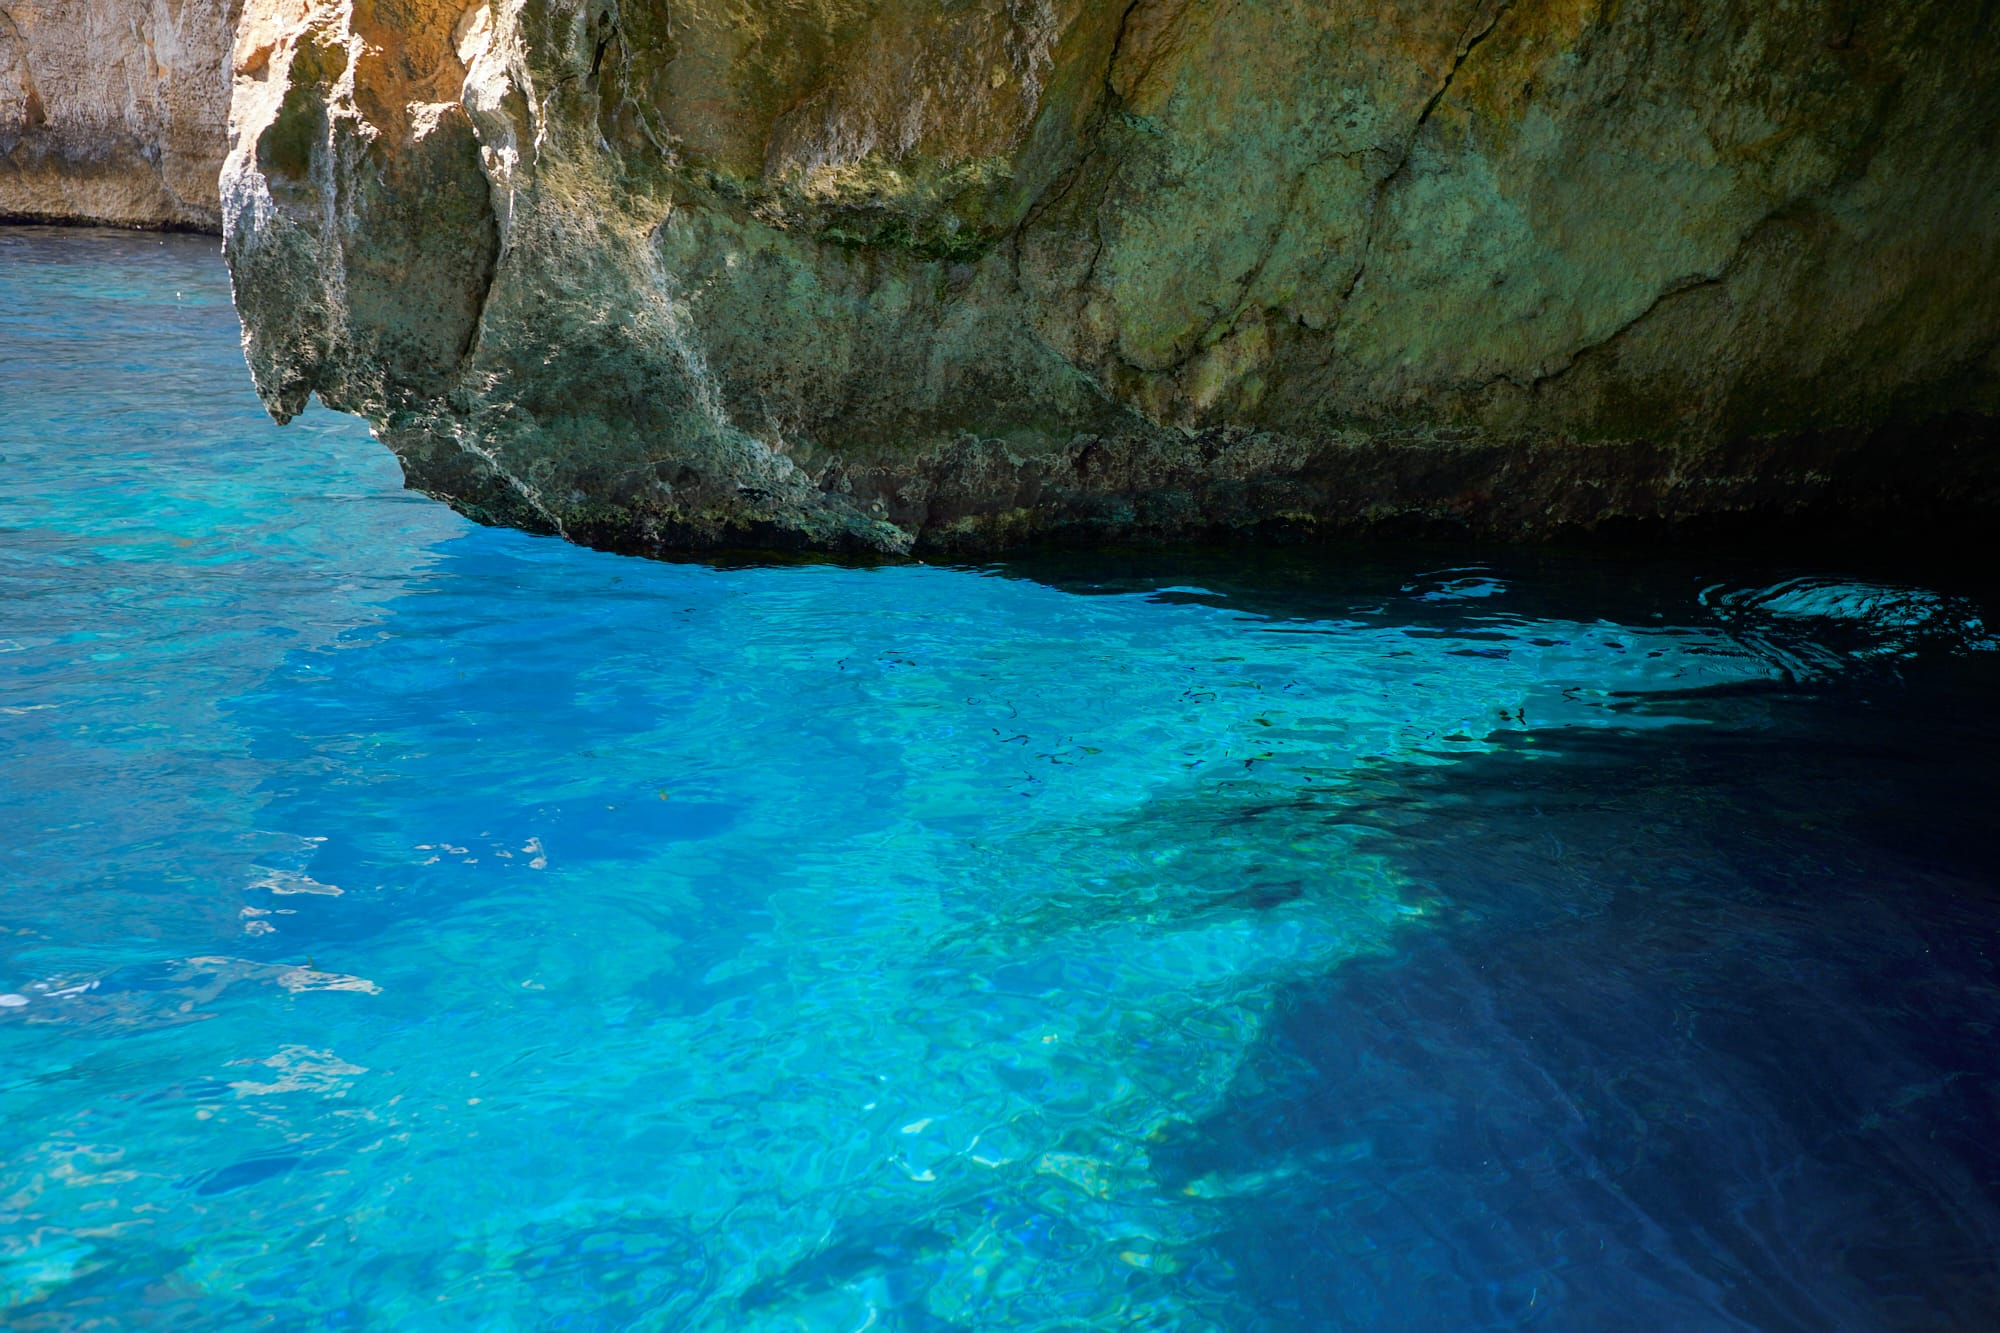 rock overhanging blue water